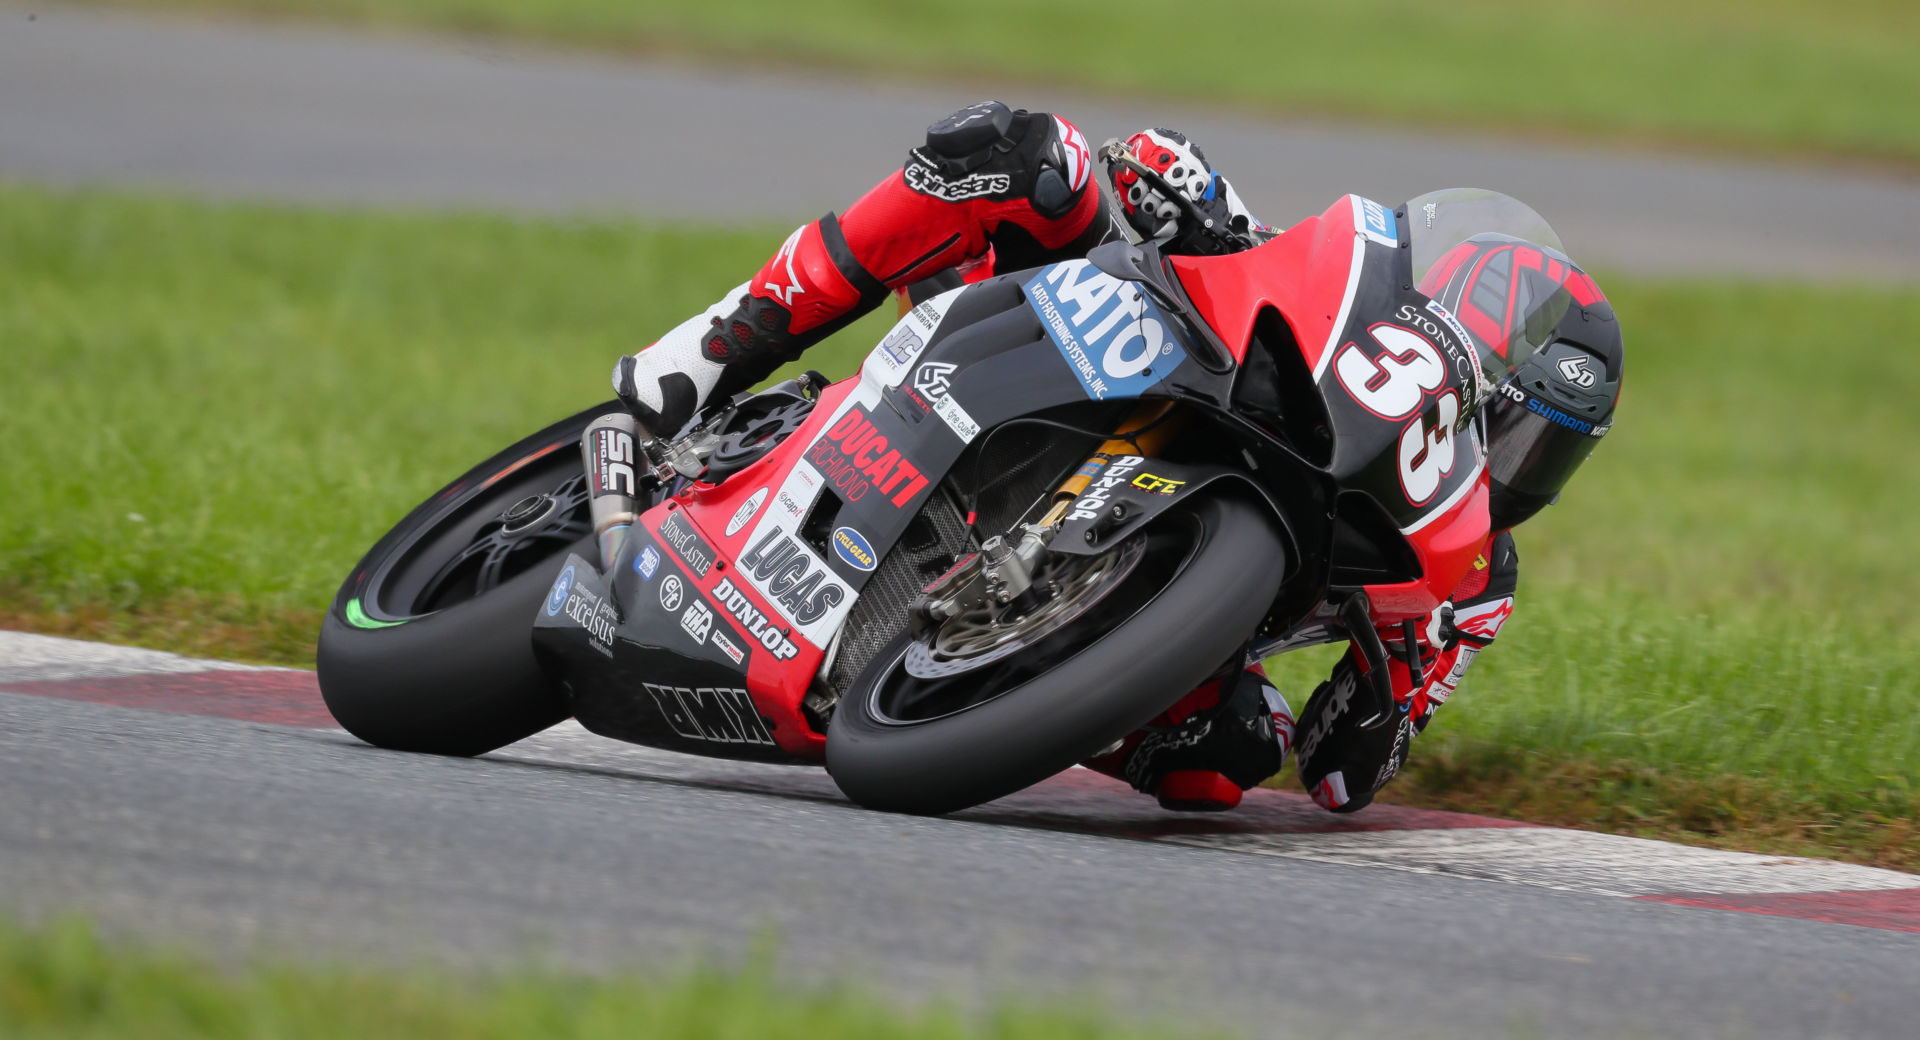 Kyle Wyman (33) in action at New Jersey Motorsports Park. Photo by Brian J. Nelson.